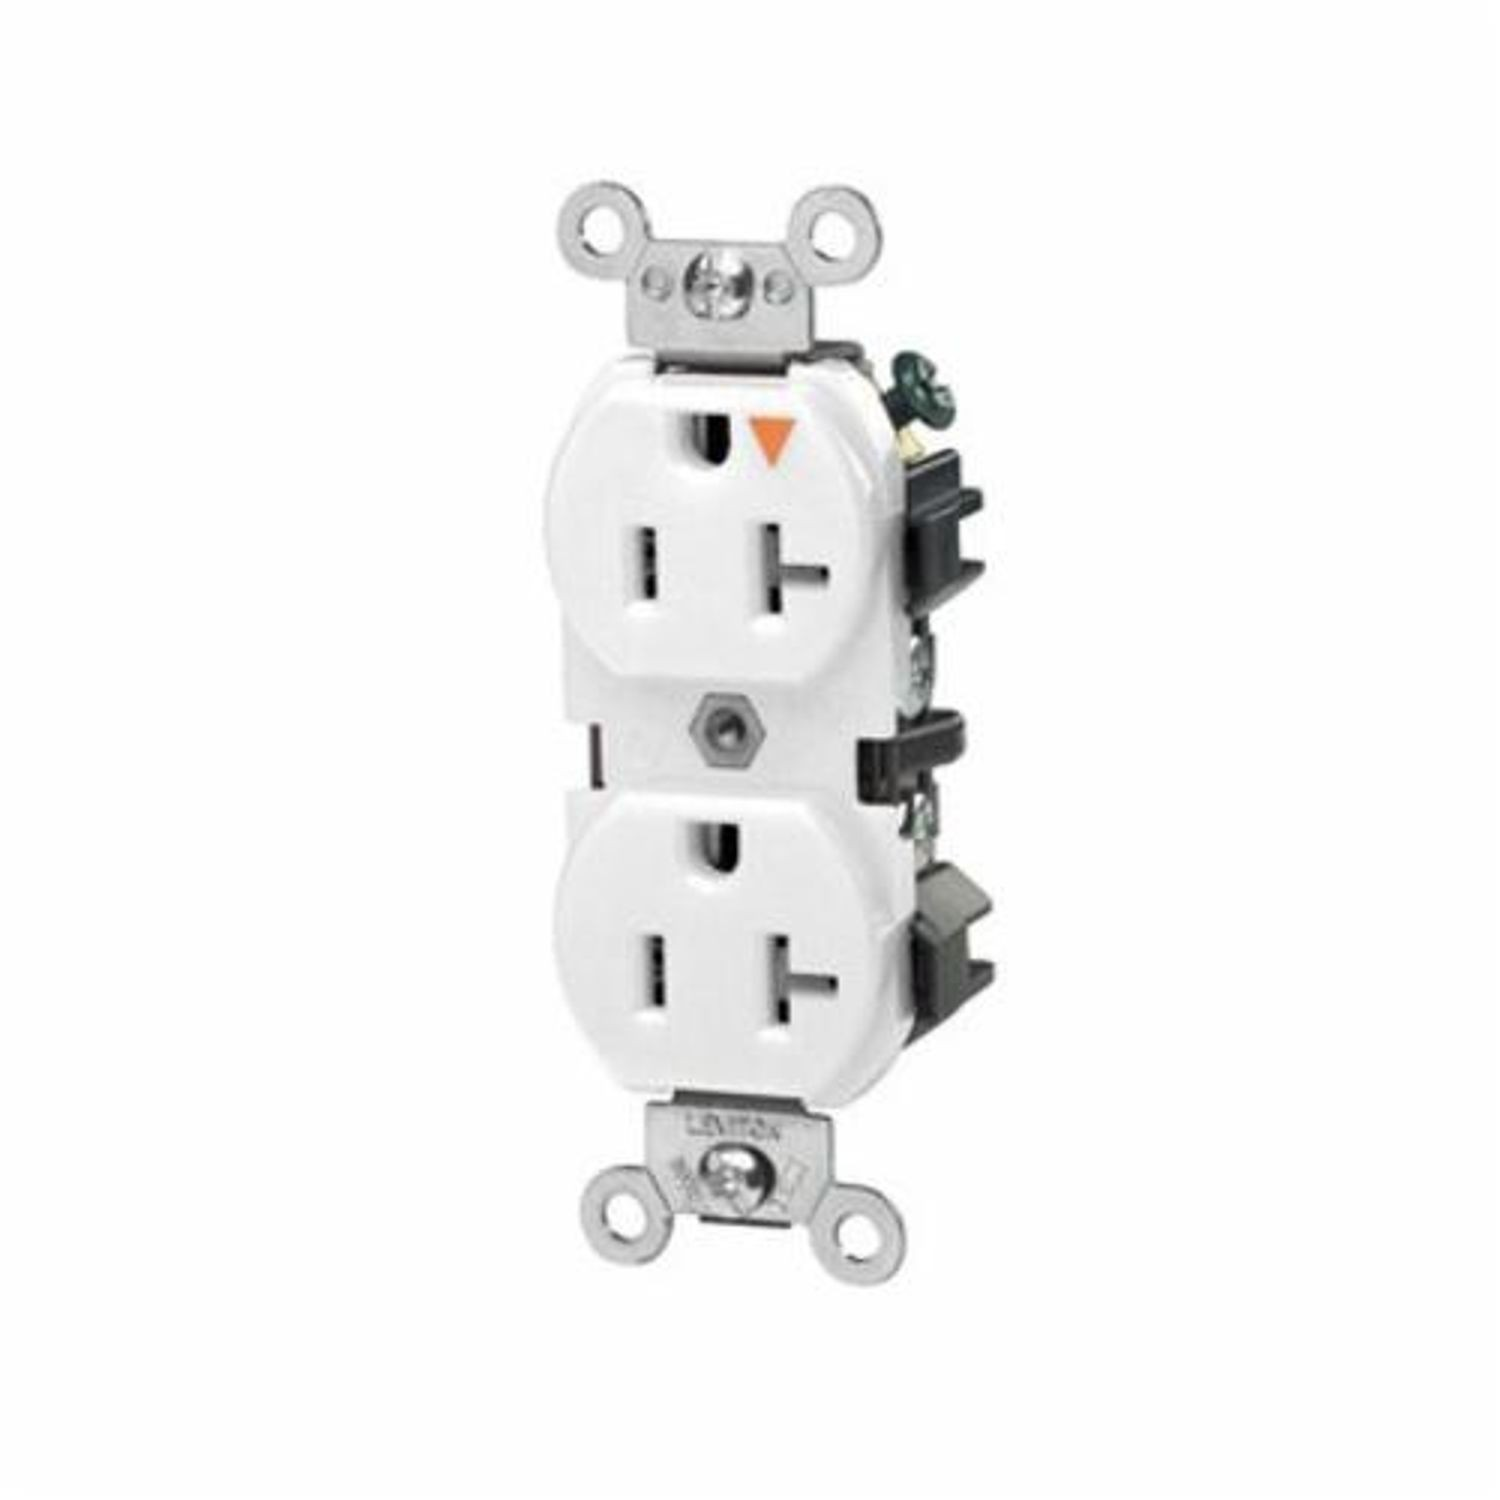 hight resolution of leviton 5362 igw heavy duty isolated ground straight blade duplex receptacle 125 vac 20 a 2 poles 3 wires white state electric